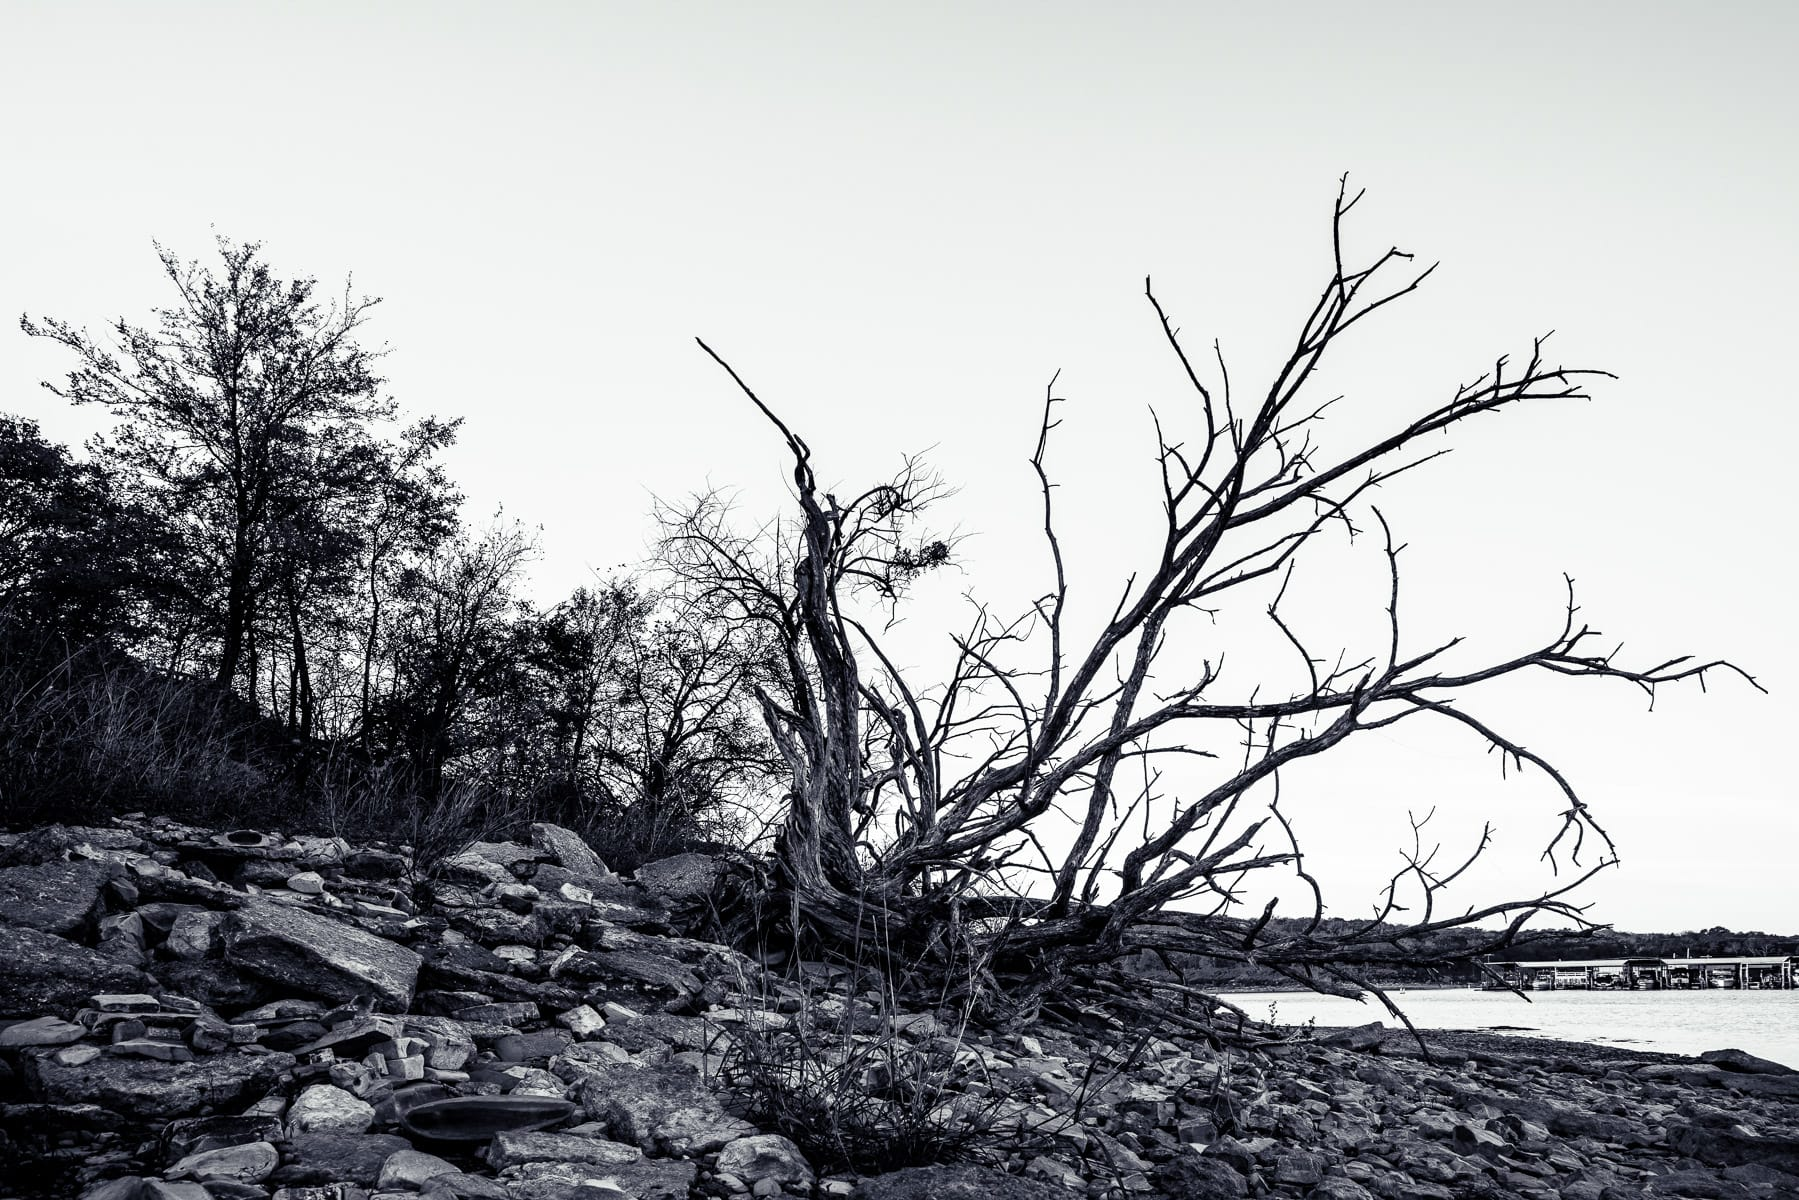 A barren tree on a rocky beach at North Texas' Eisenhower State Park.